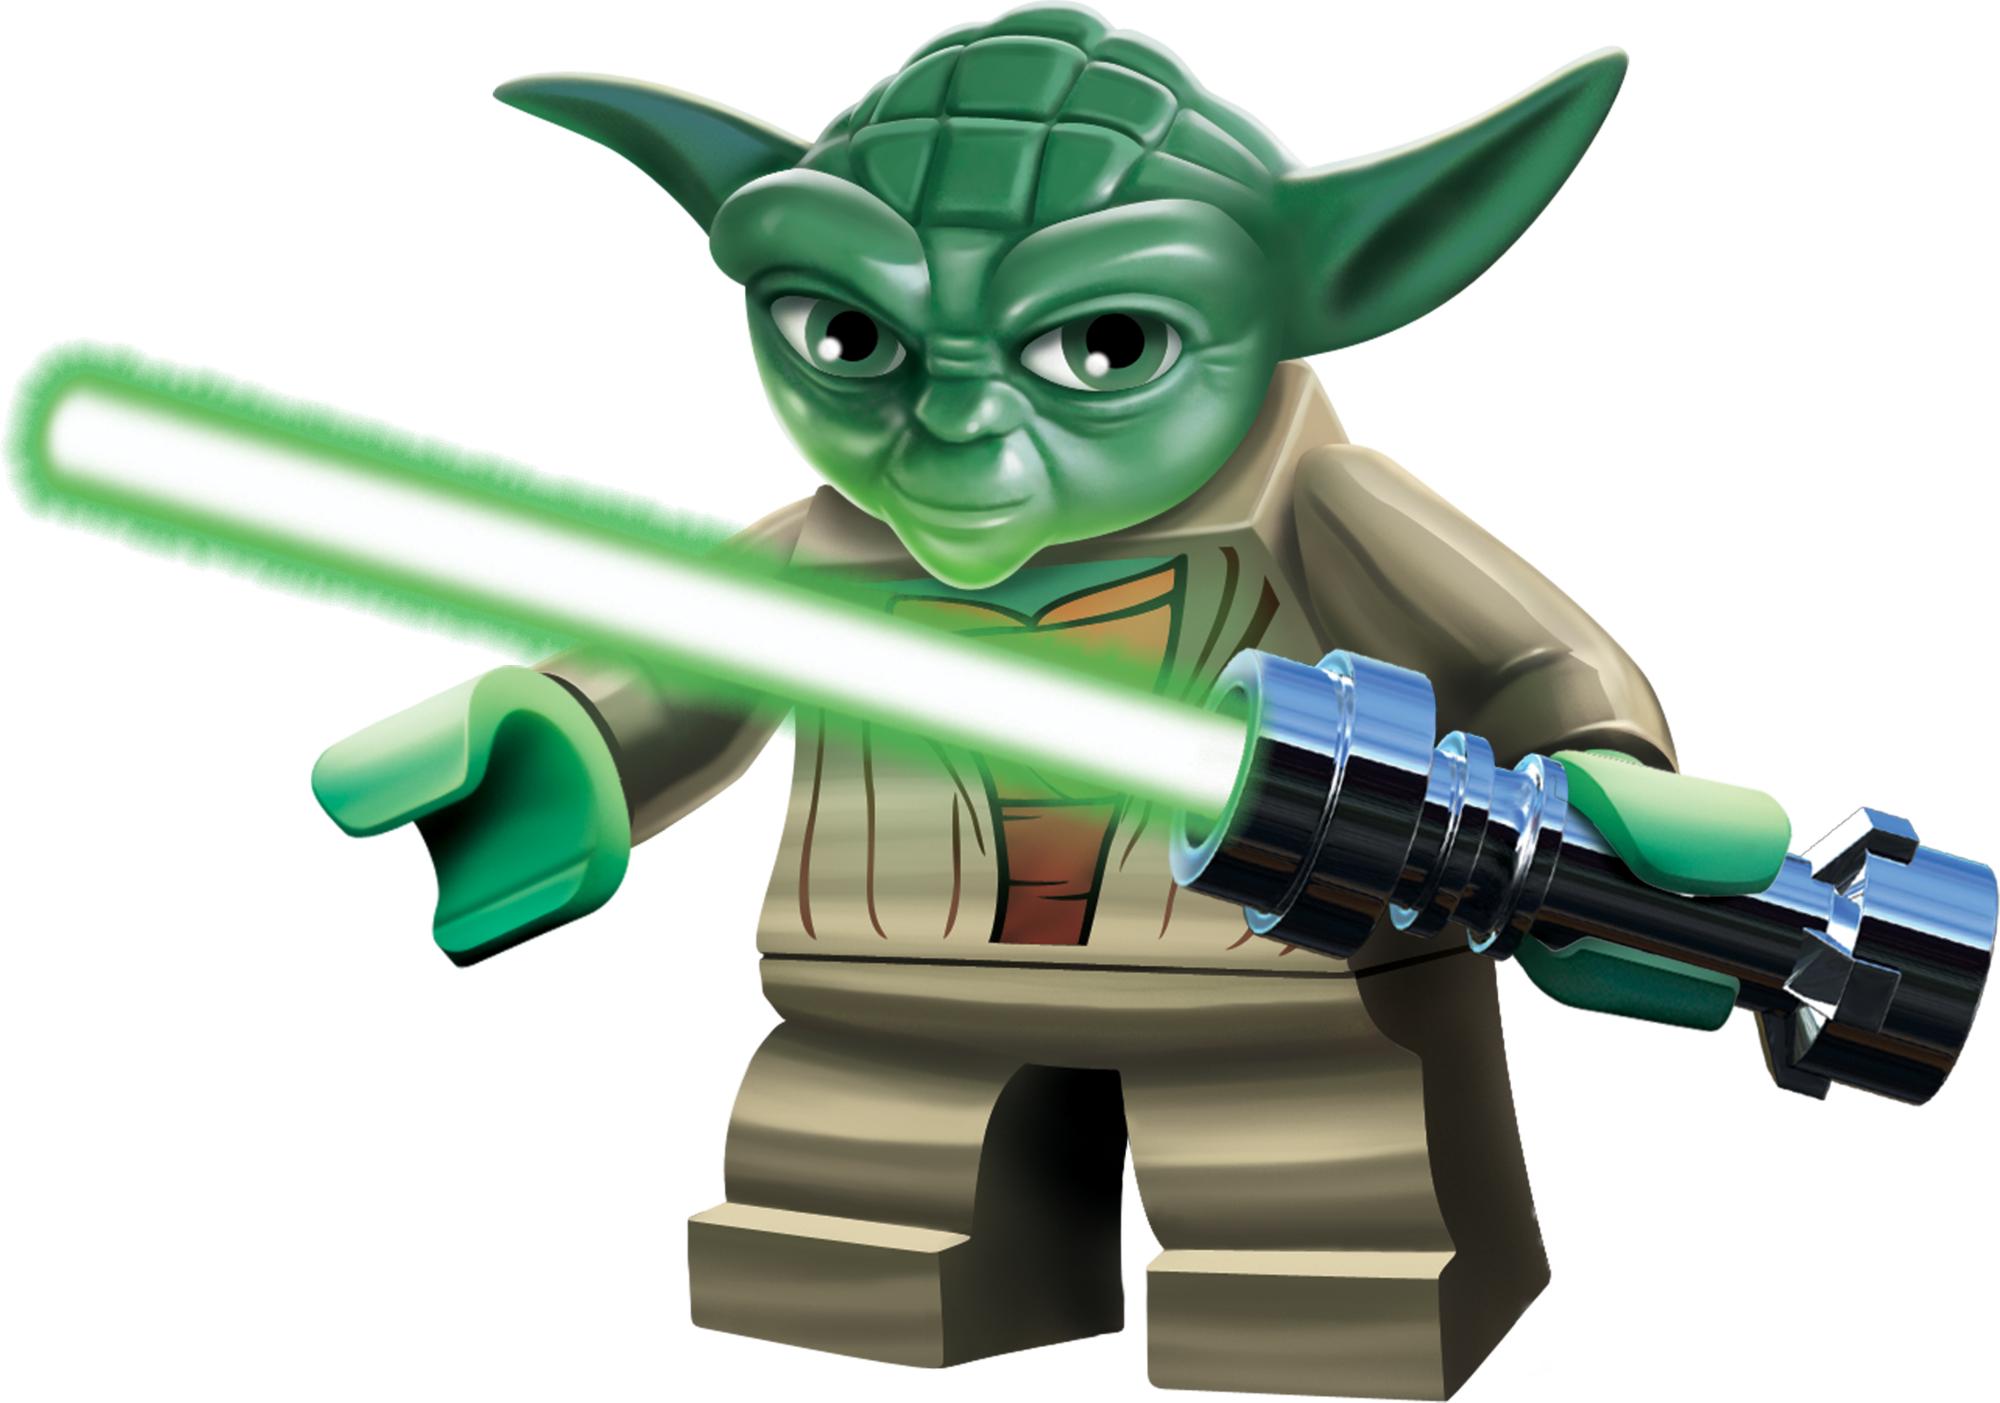 Star Wars Yoda PNG - 40428